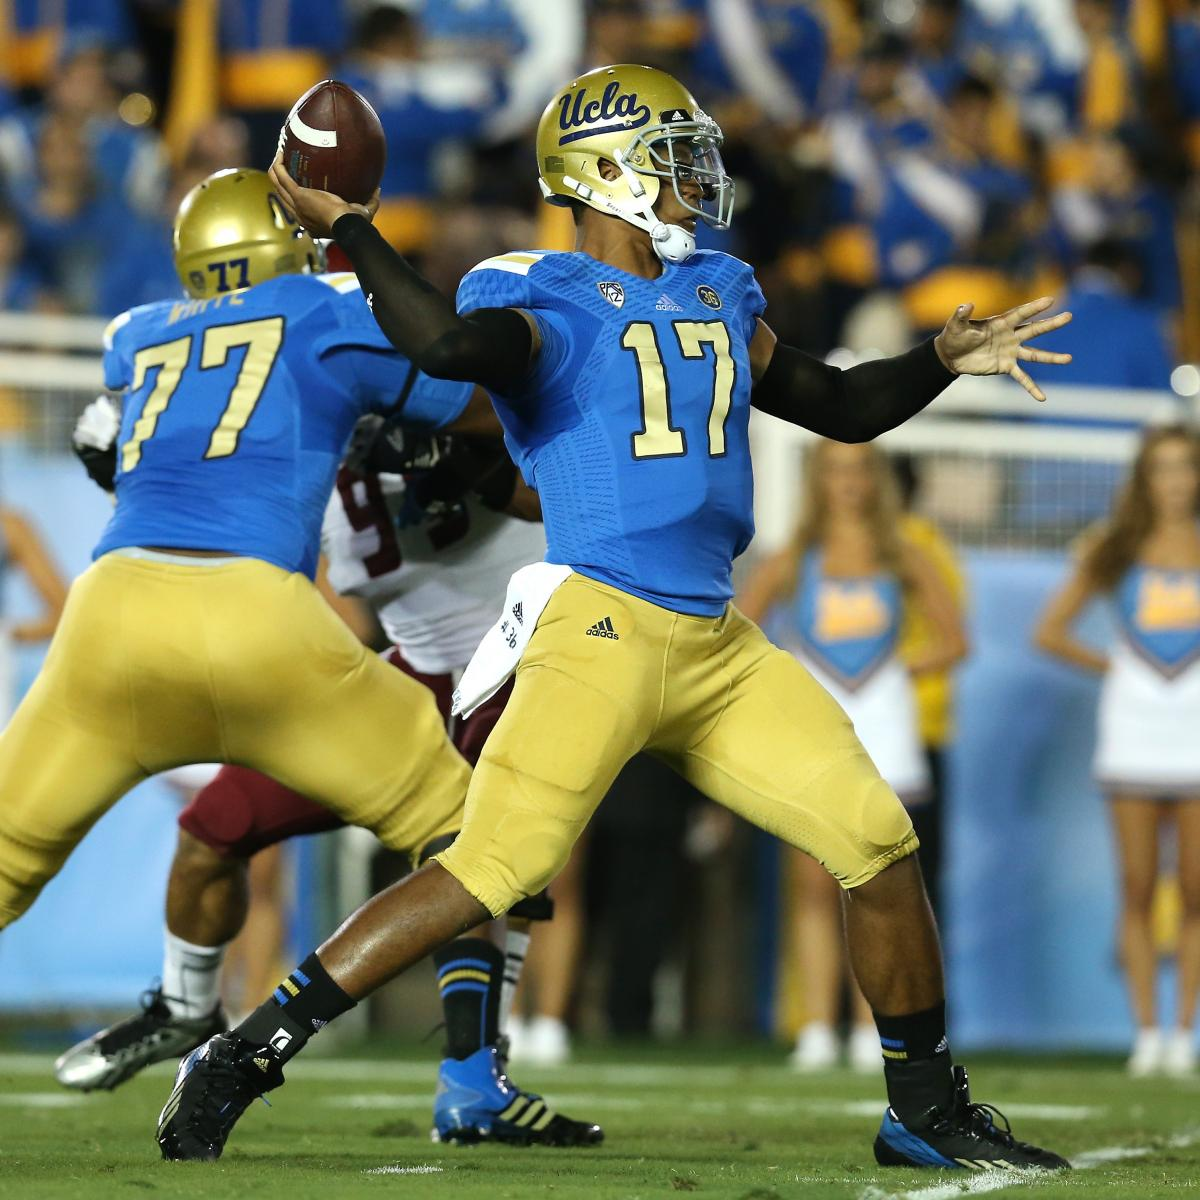 UCLA Bruins vs. Utah Utes Complete Game Preview | Bleacher ...Bruins Bleacher Report